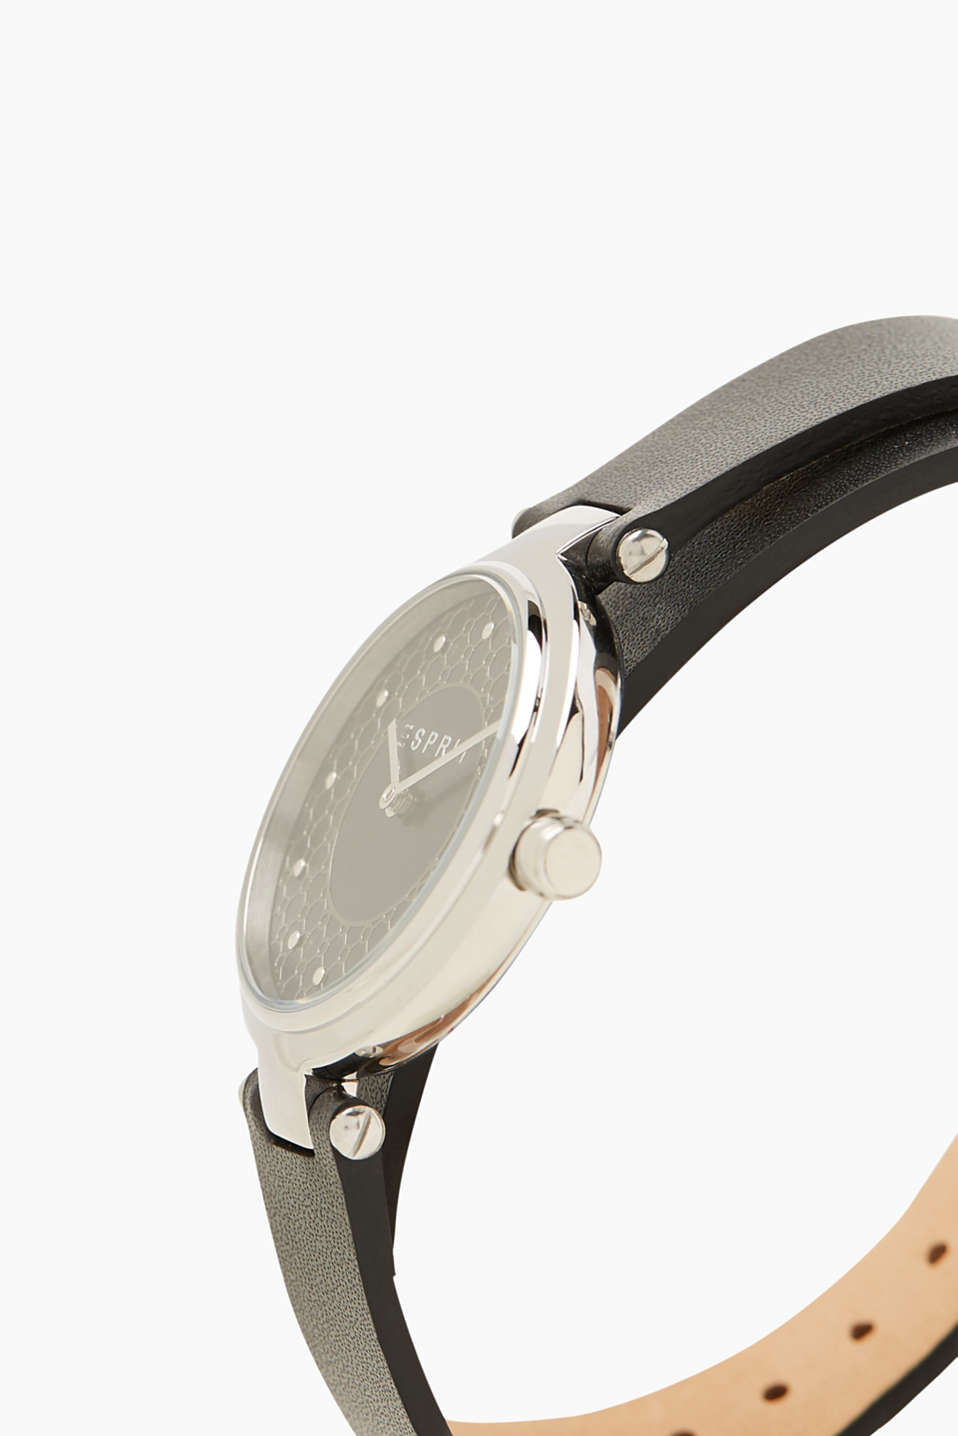 Watch with double-bound leather wrist strap